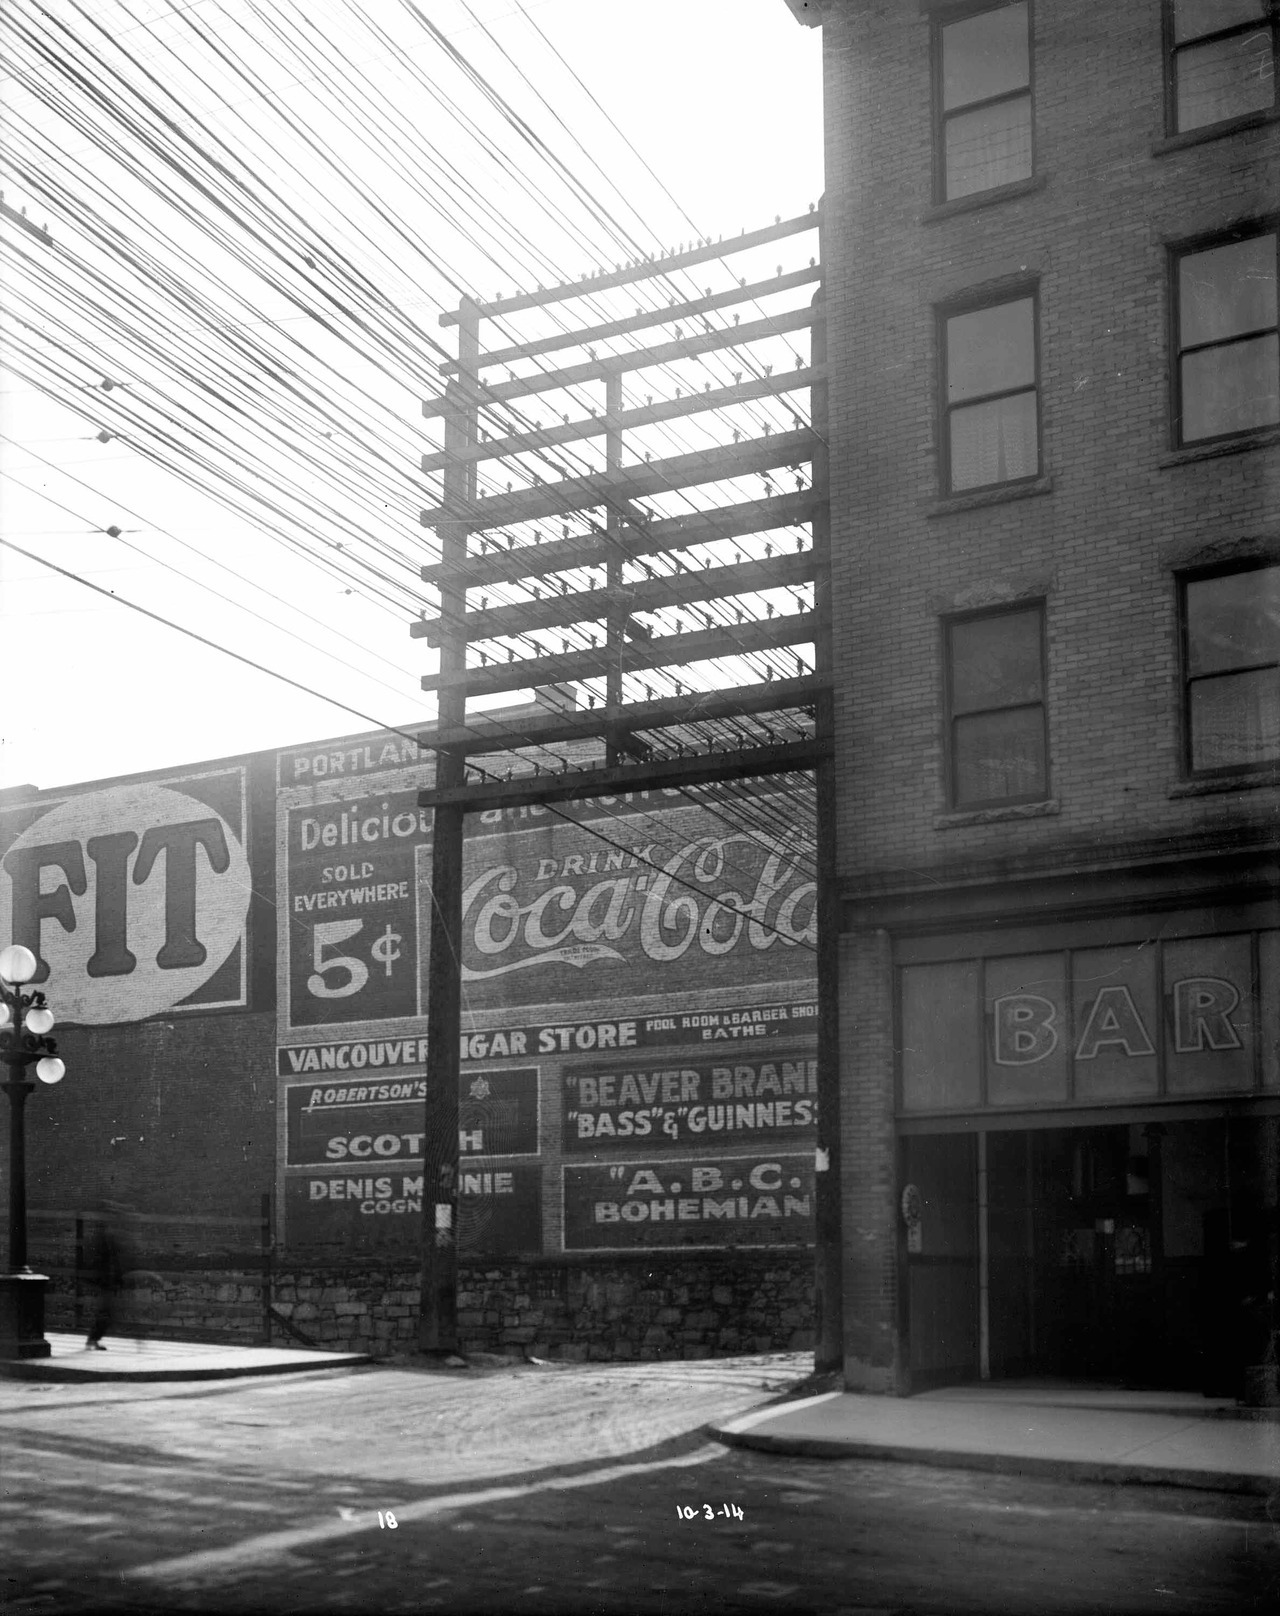 Pender Street, west of Main, Tuesday 10 March 1914 Source: City of Vancouver Archives #LGN 1231